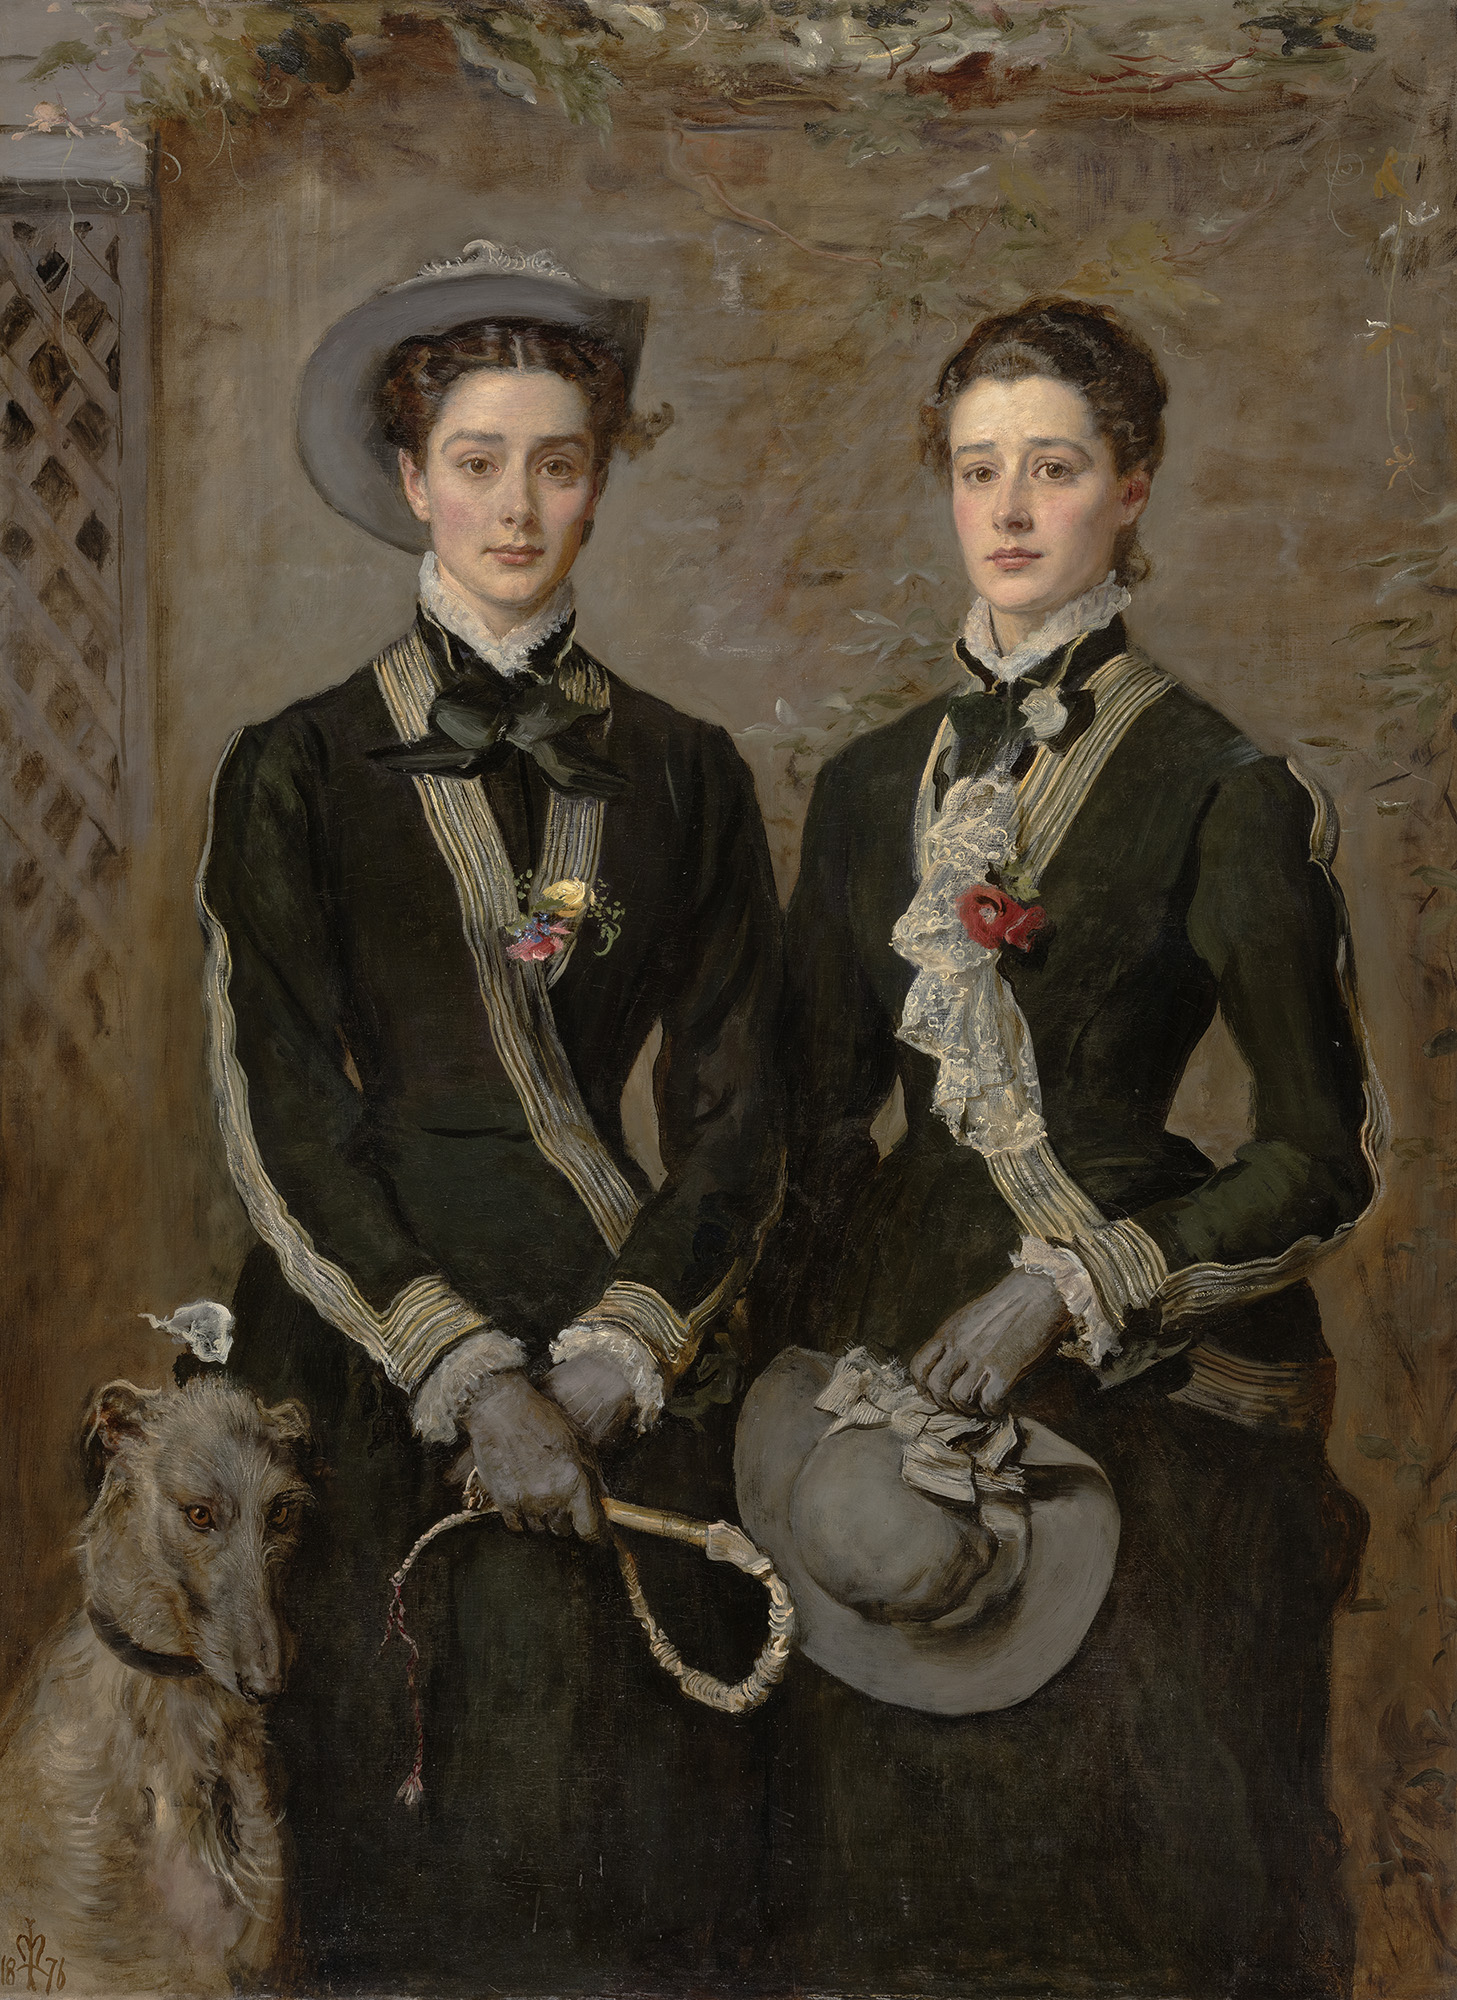 'The Twins' (portrait of Kate and Grace Hoare) by John Everett Millais (1829-96), oil on canvas, 1876. The Fitzwiliam Museum, Cambridge